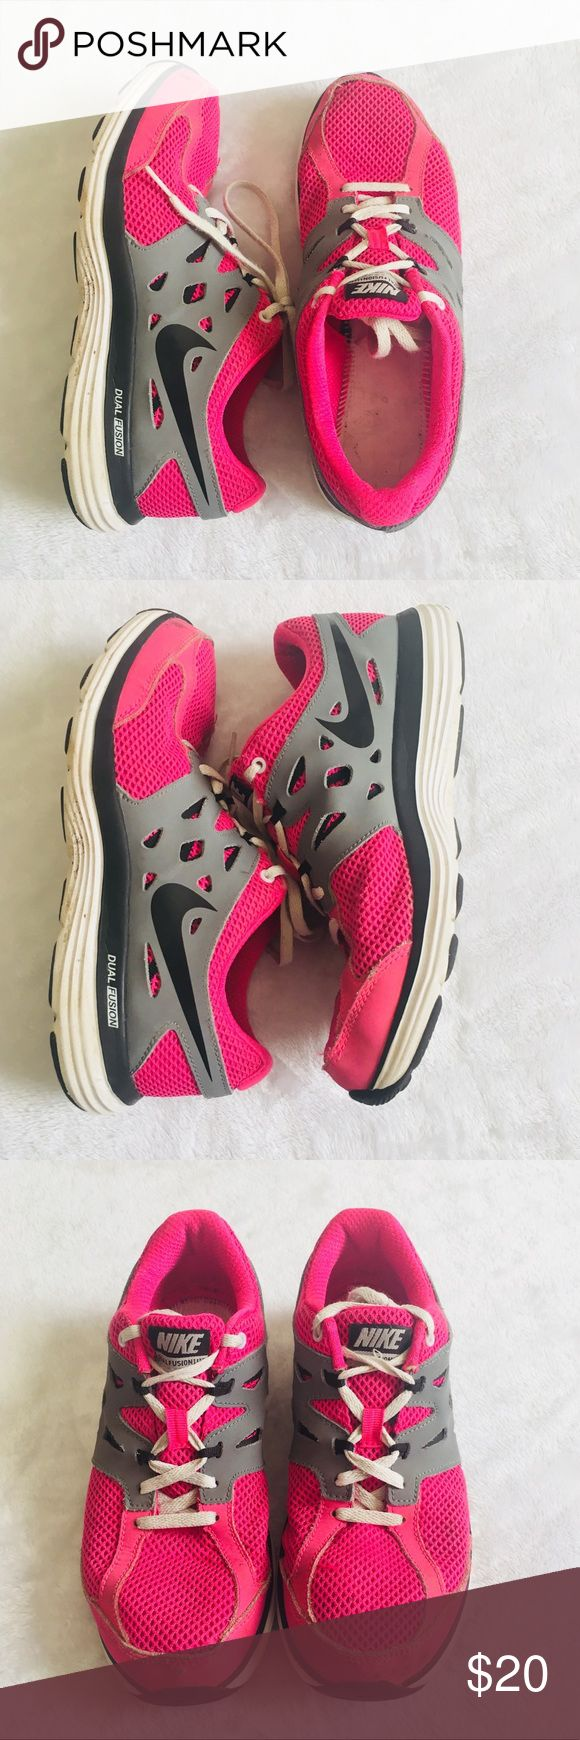 Nike Dual Fusions ✨ Nike dual fusion runners - Everything is intact - Some wear but still great condition - Youth 5.5 fits a womens 7 ✨ Nike Shoes Athletic Shoes